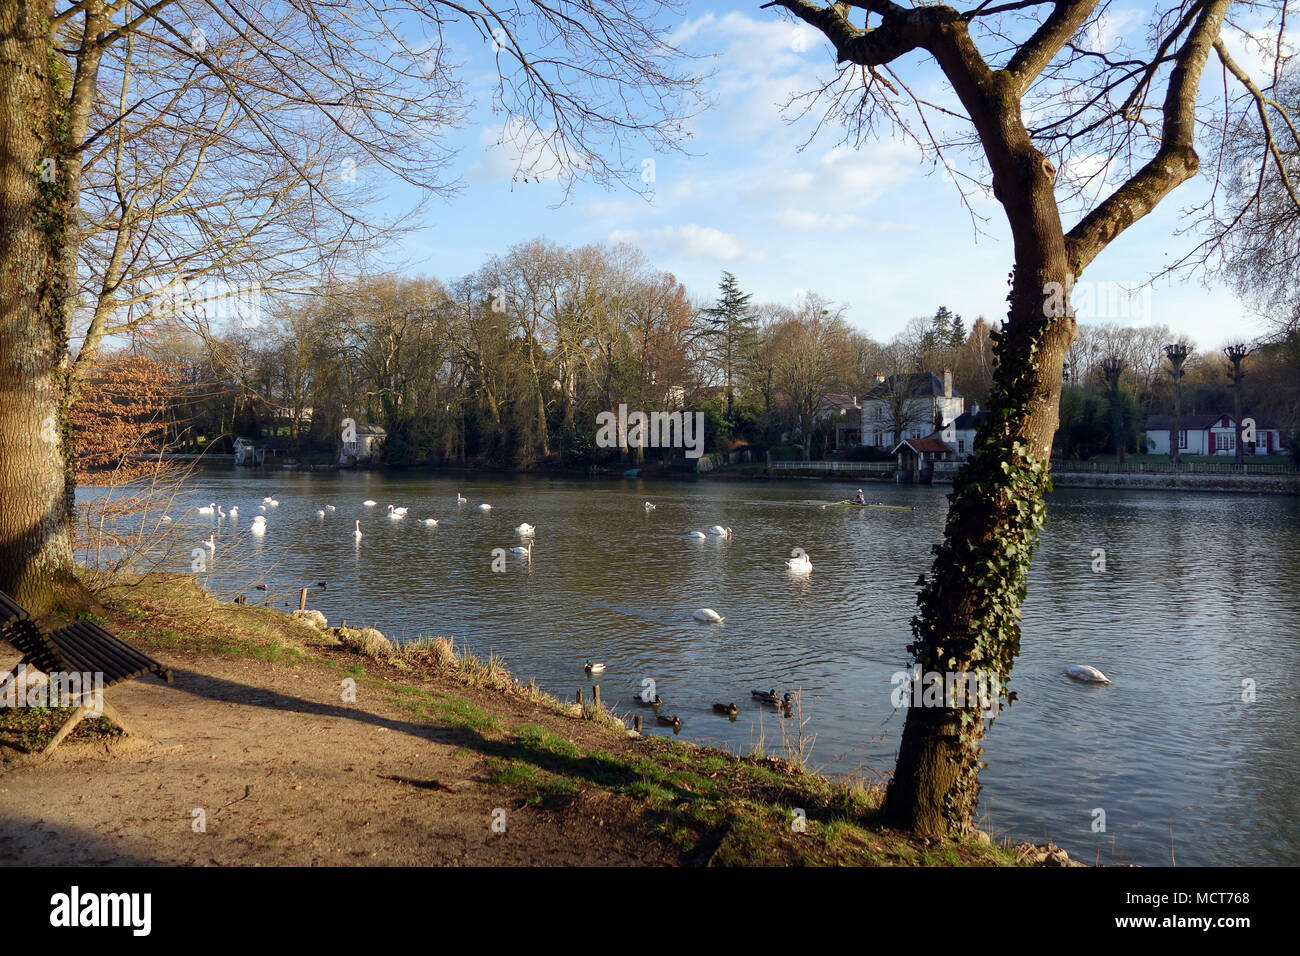 The Loiret River near Olivet, south of Orleans in France - Stock Image